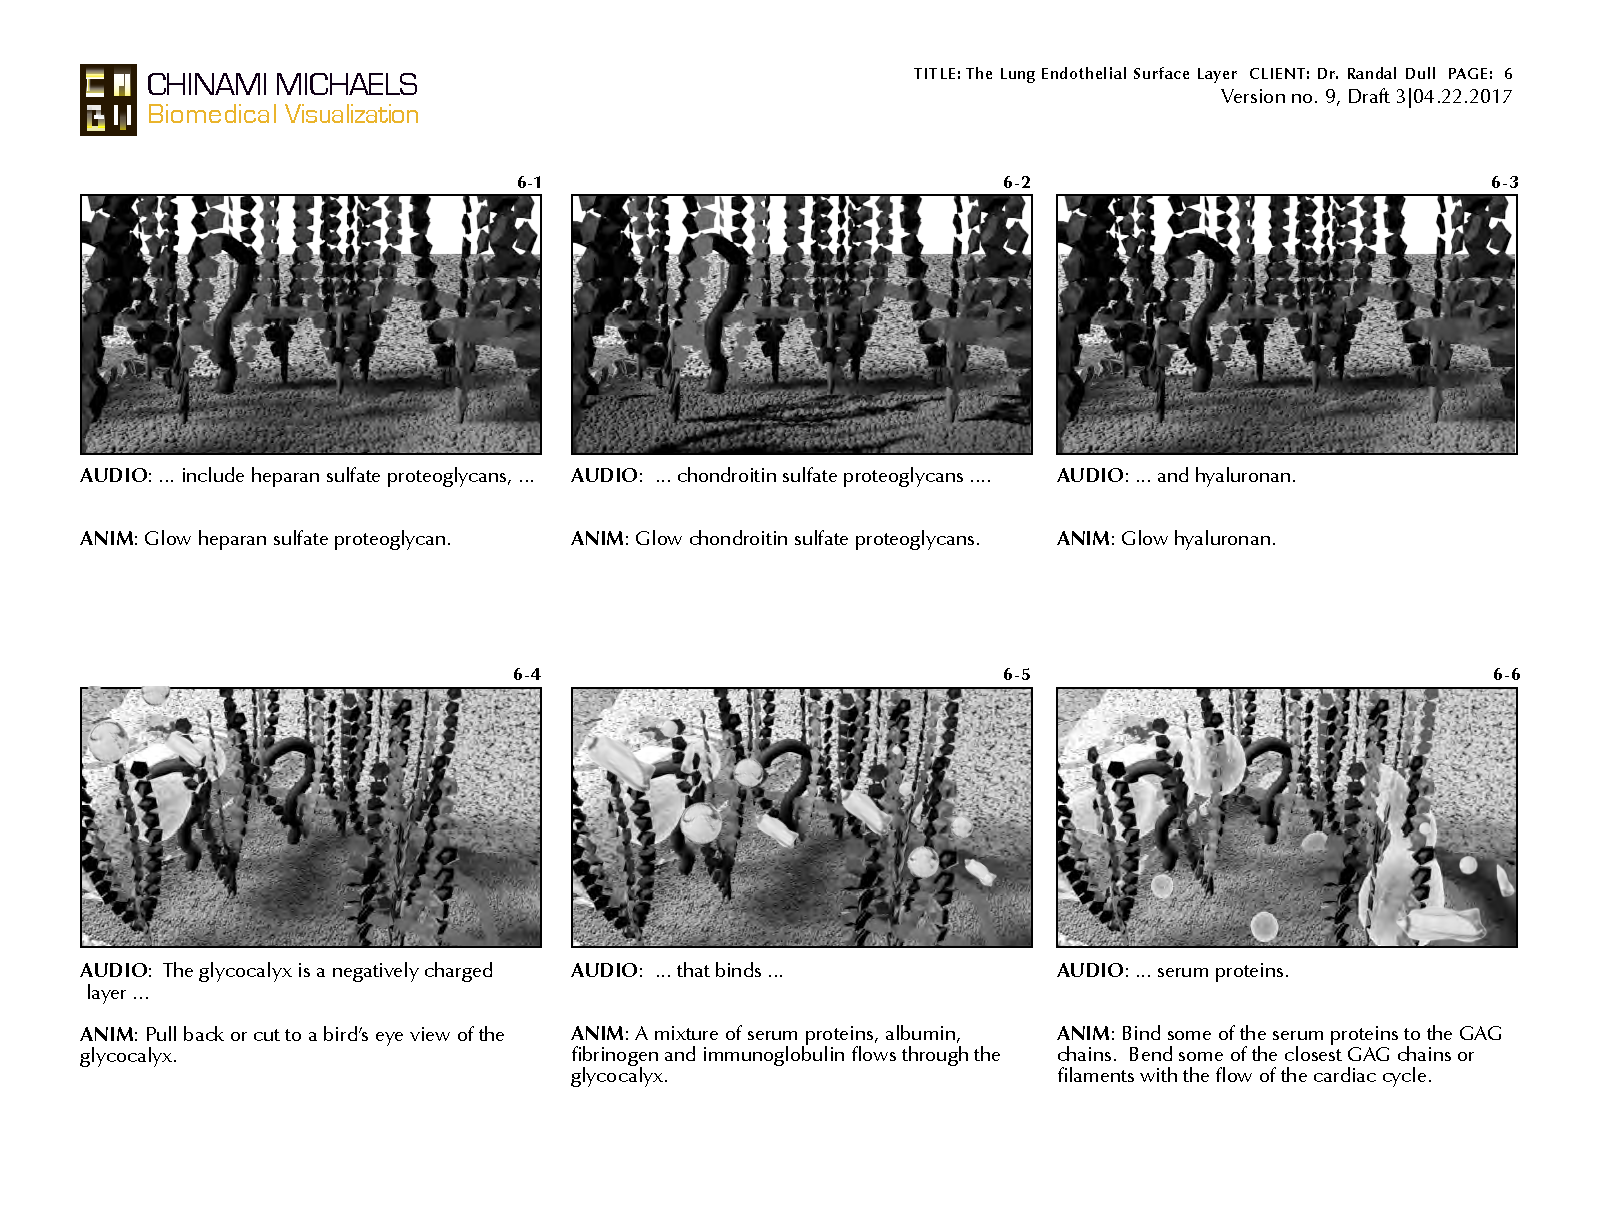 1704_Storyboard_04242017_InteractivePDF_Storyboard_Michaels_Page_06.png